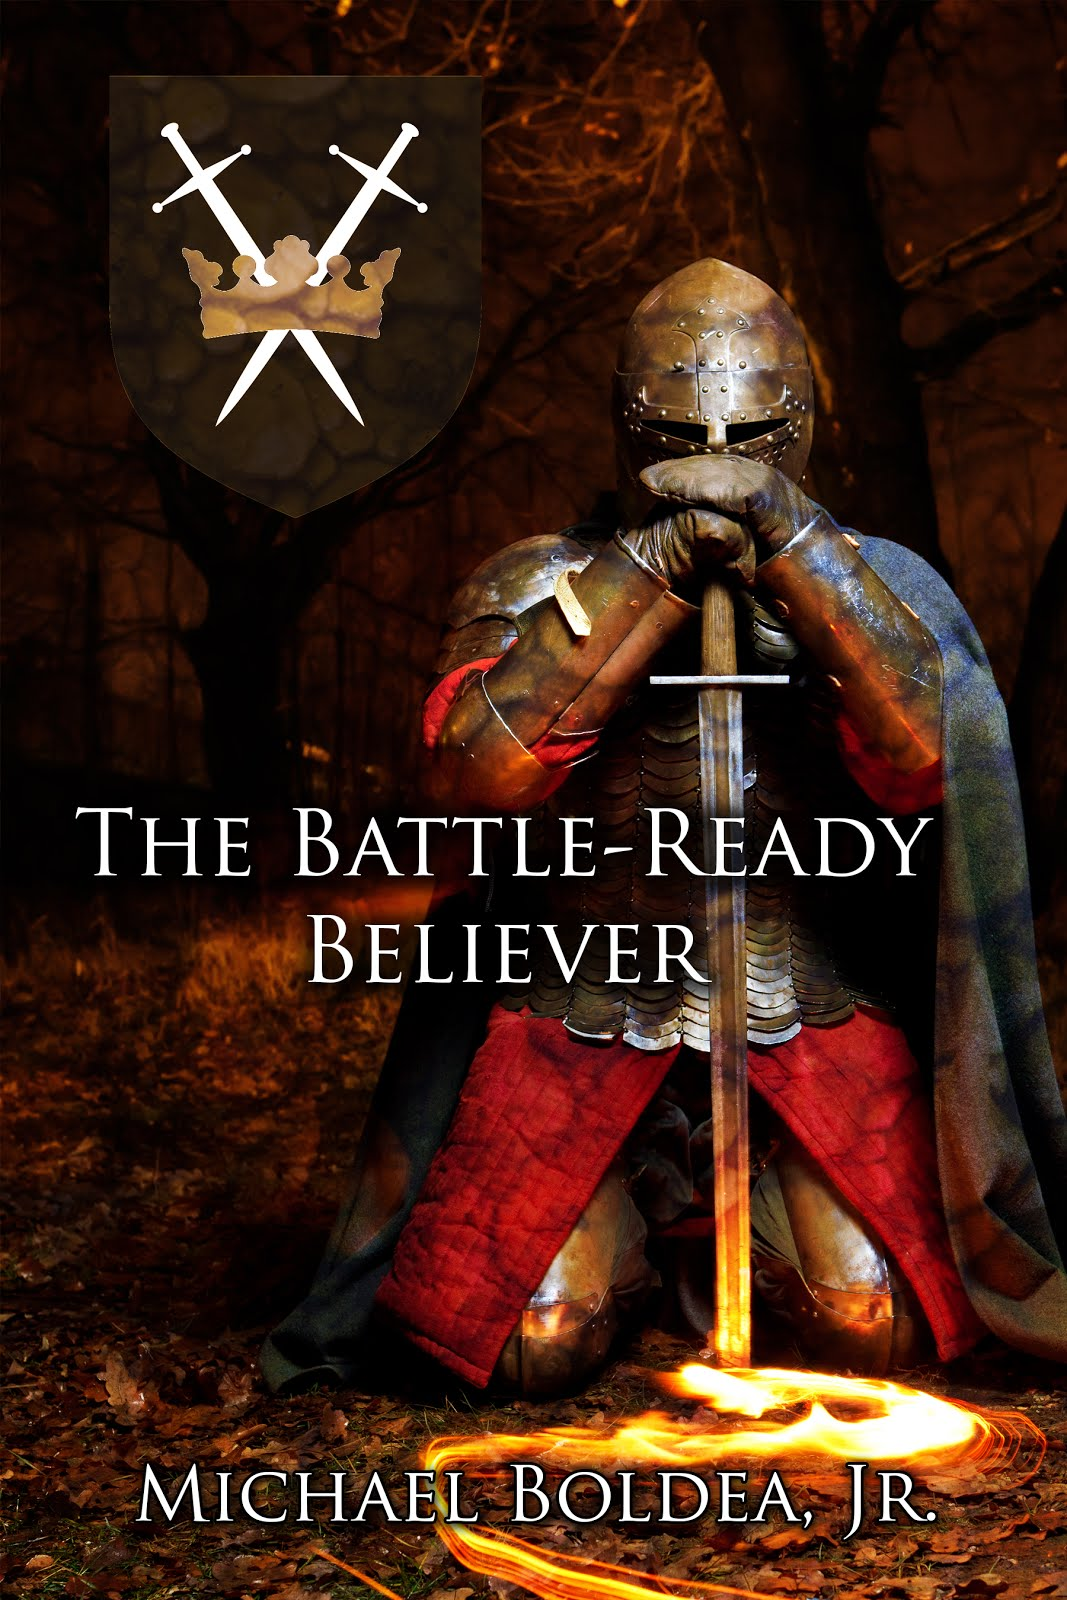 The Battle-Ready Believer